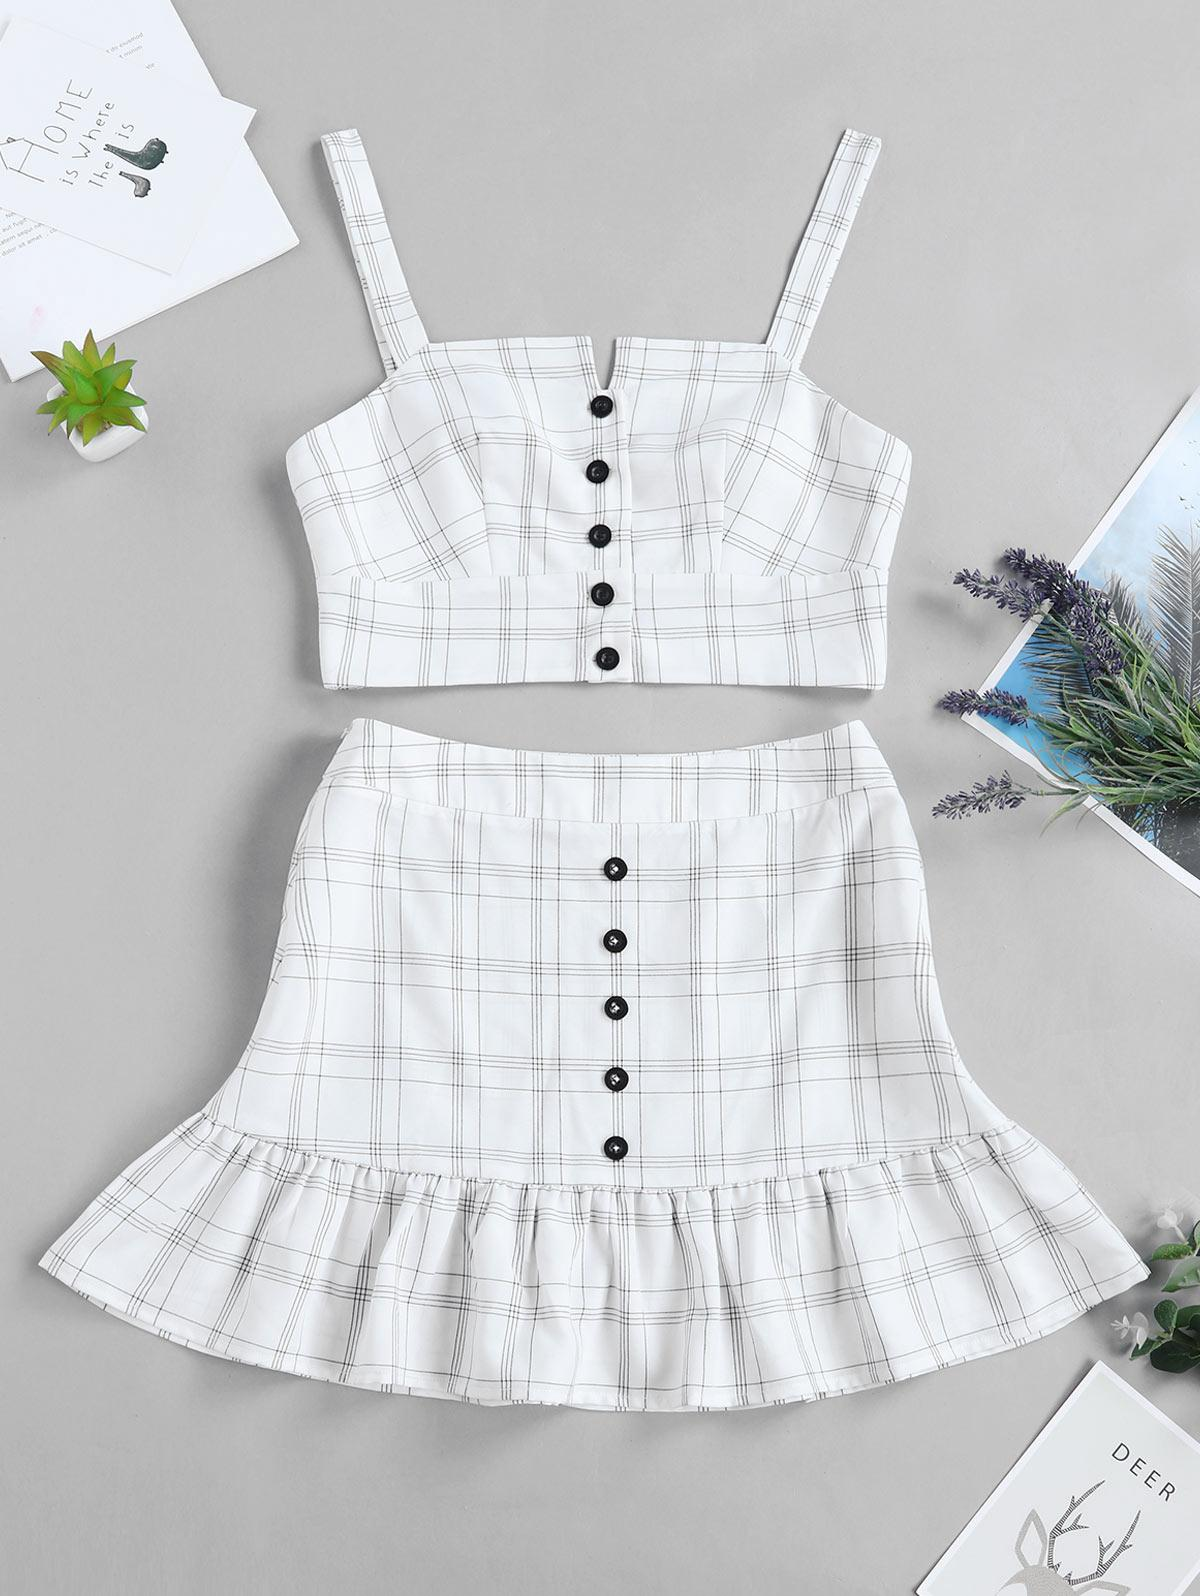 ZAFUL Checked Buttoned Top and Ruffles Skirt Set